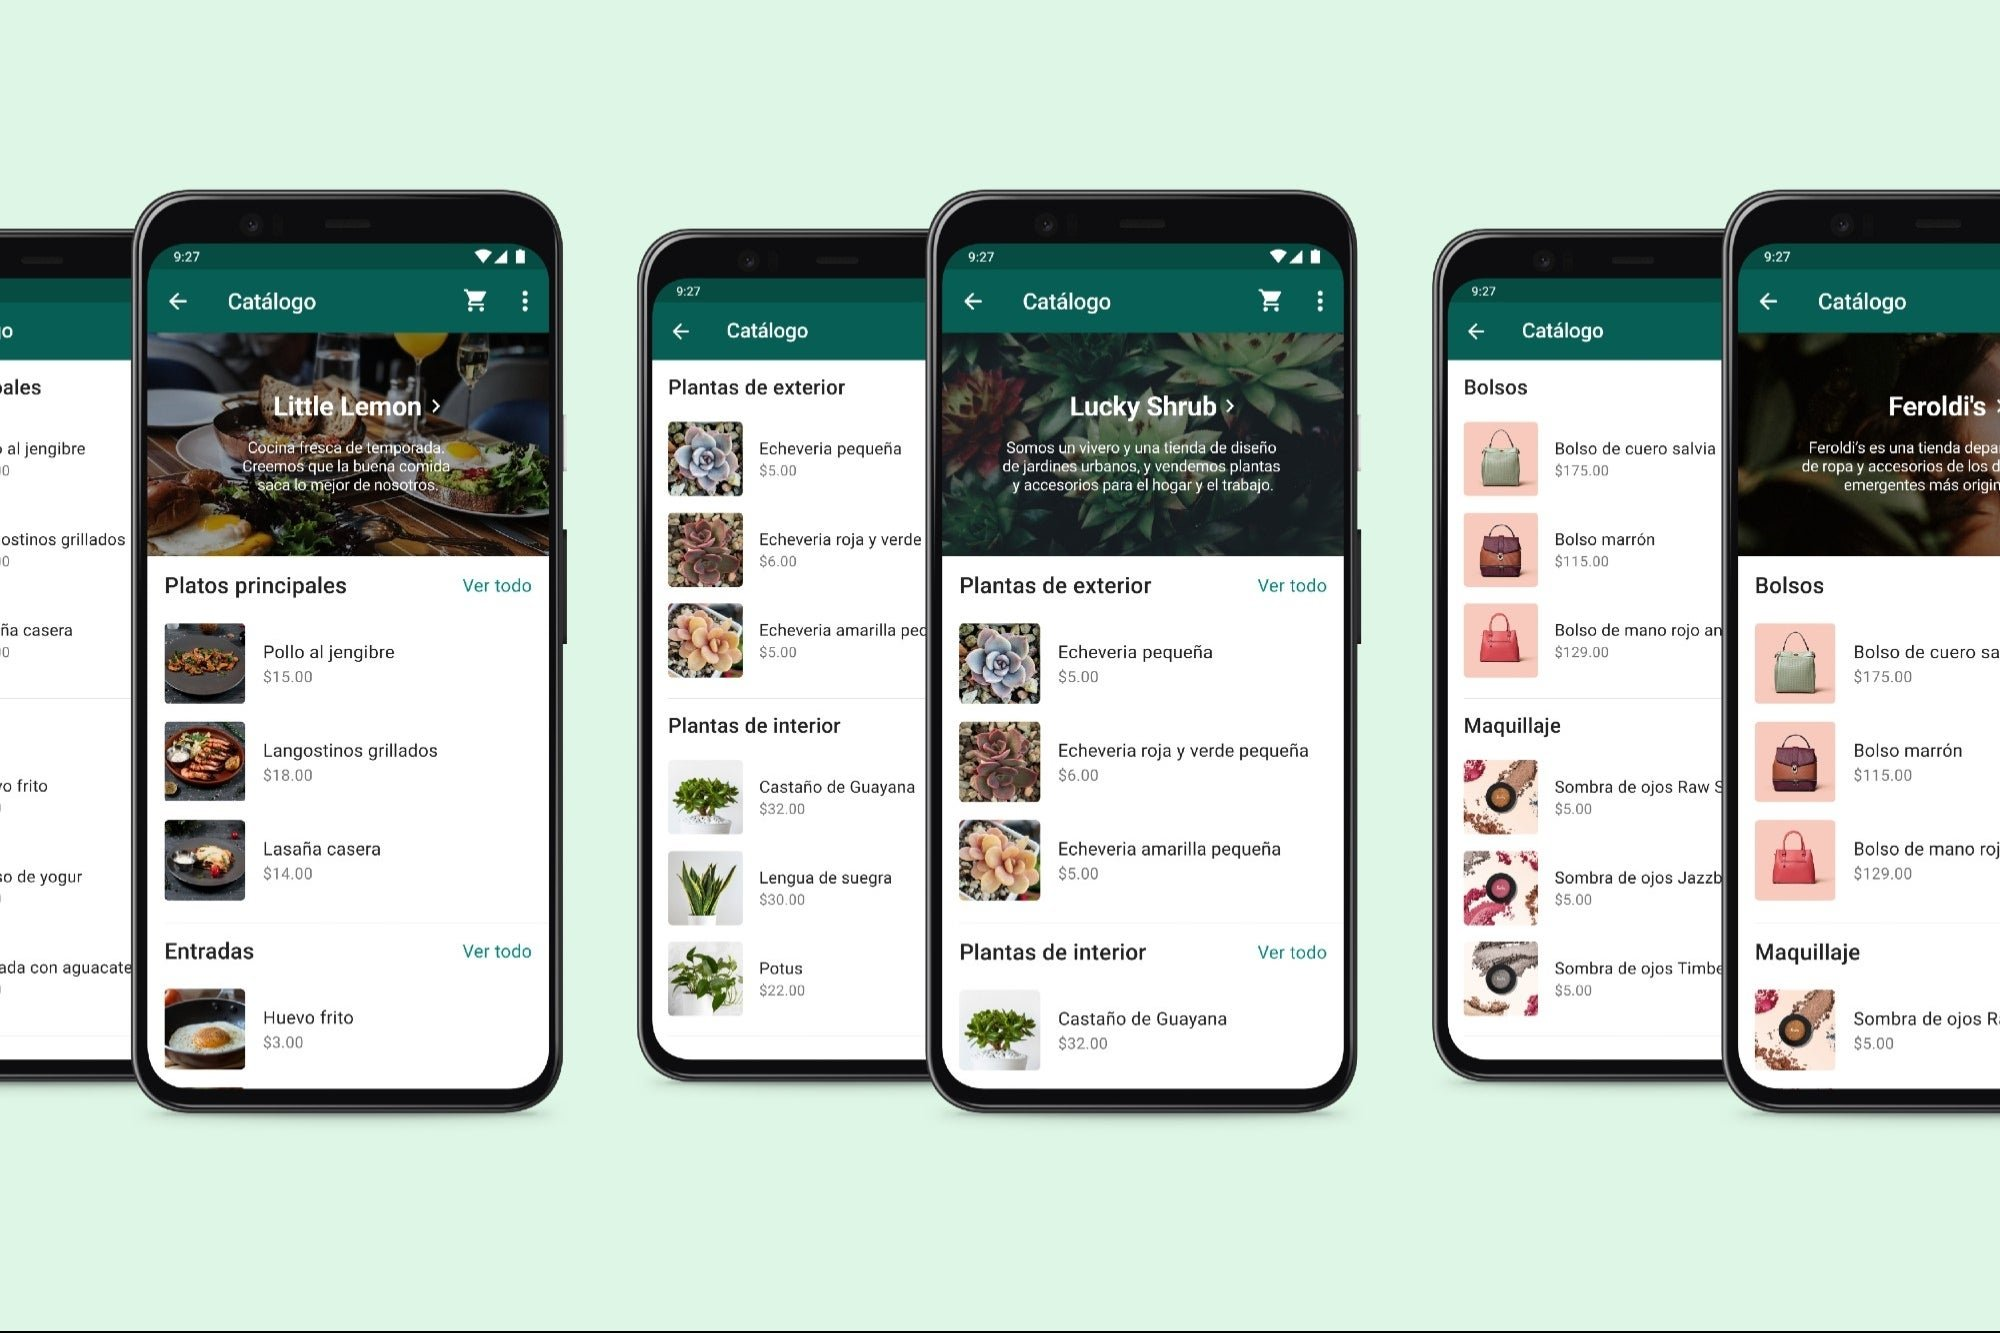 WhatsApp Business launches the new 'Collections' feature to organize your products and make shopping easier. See how it works.